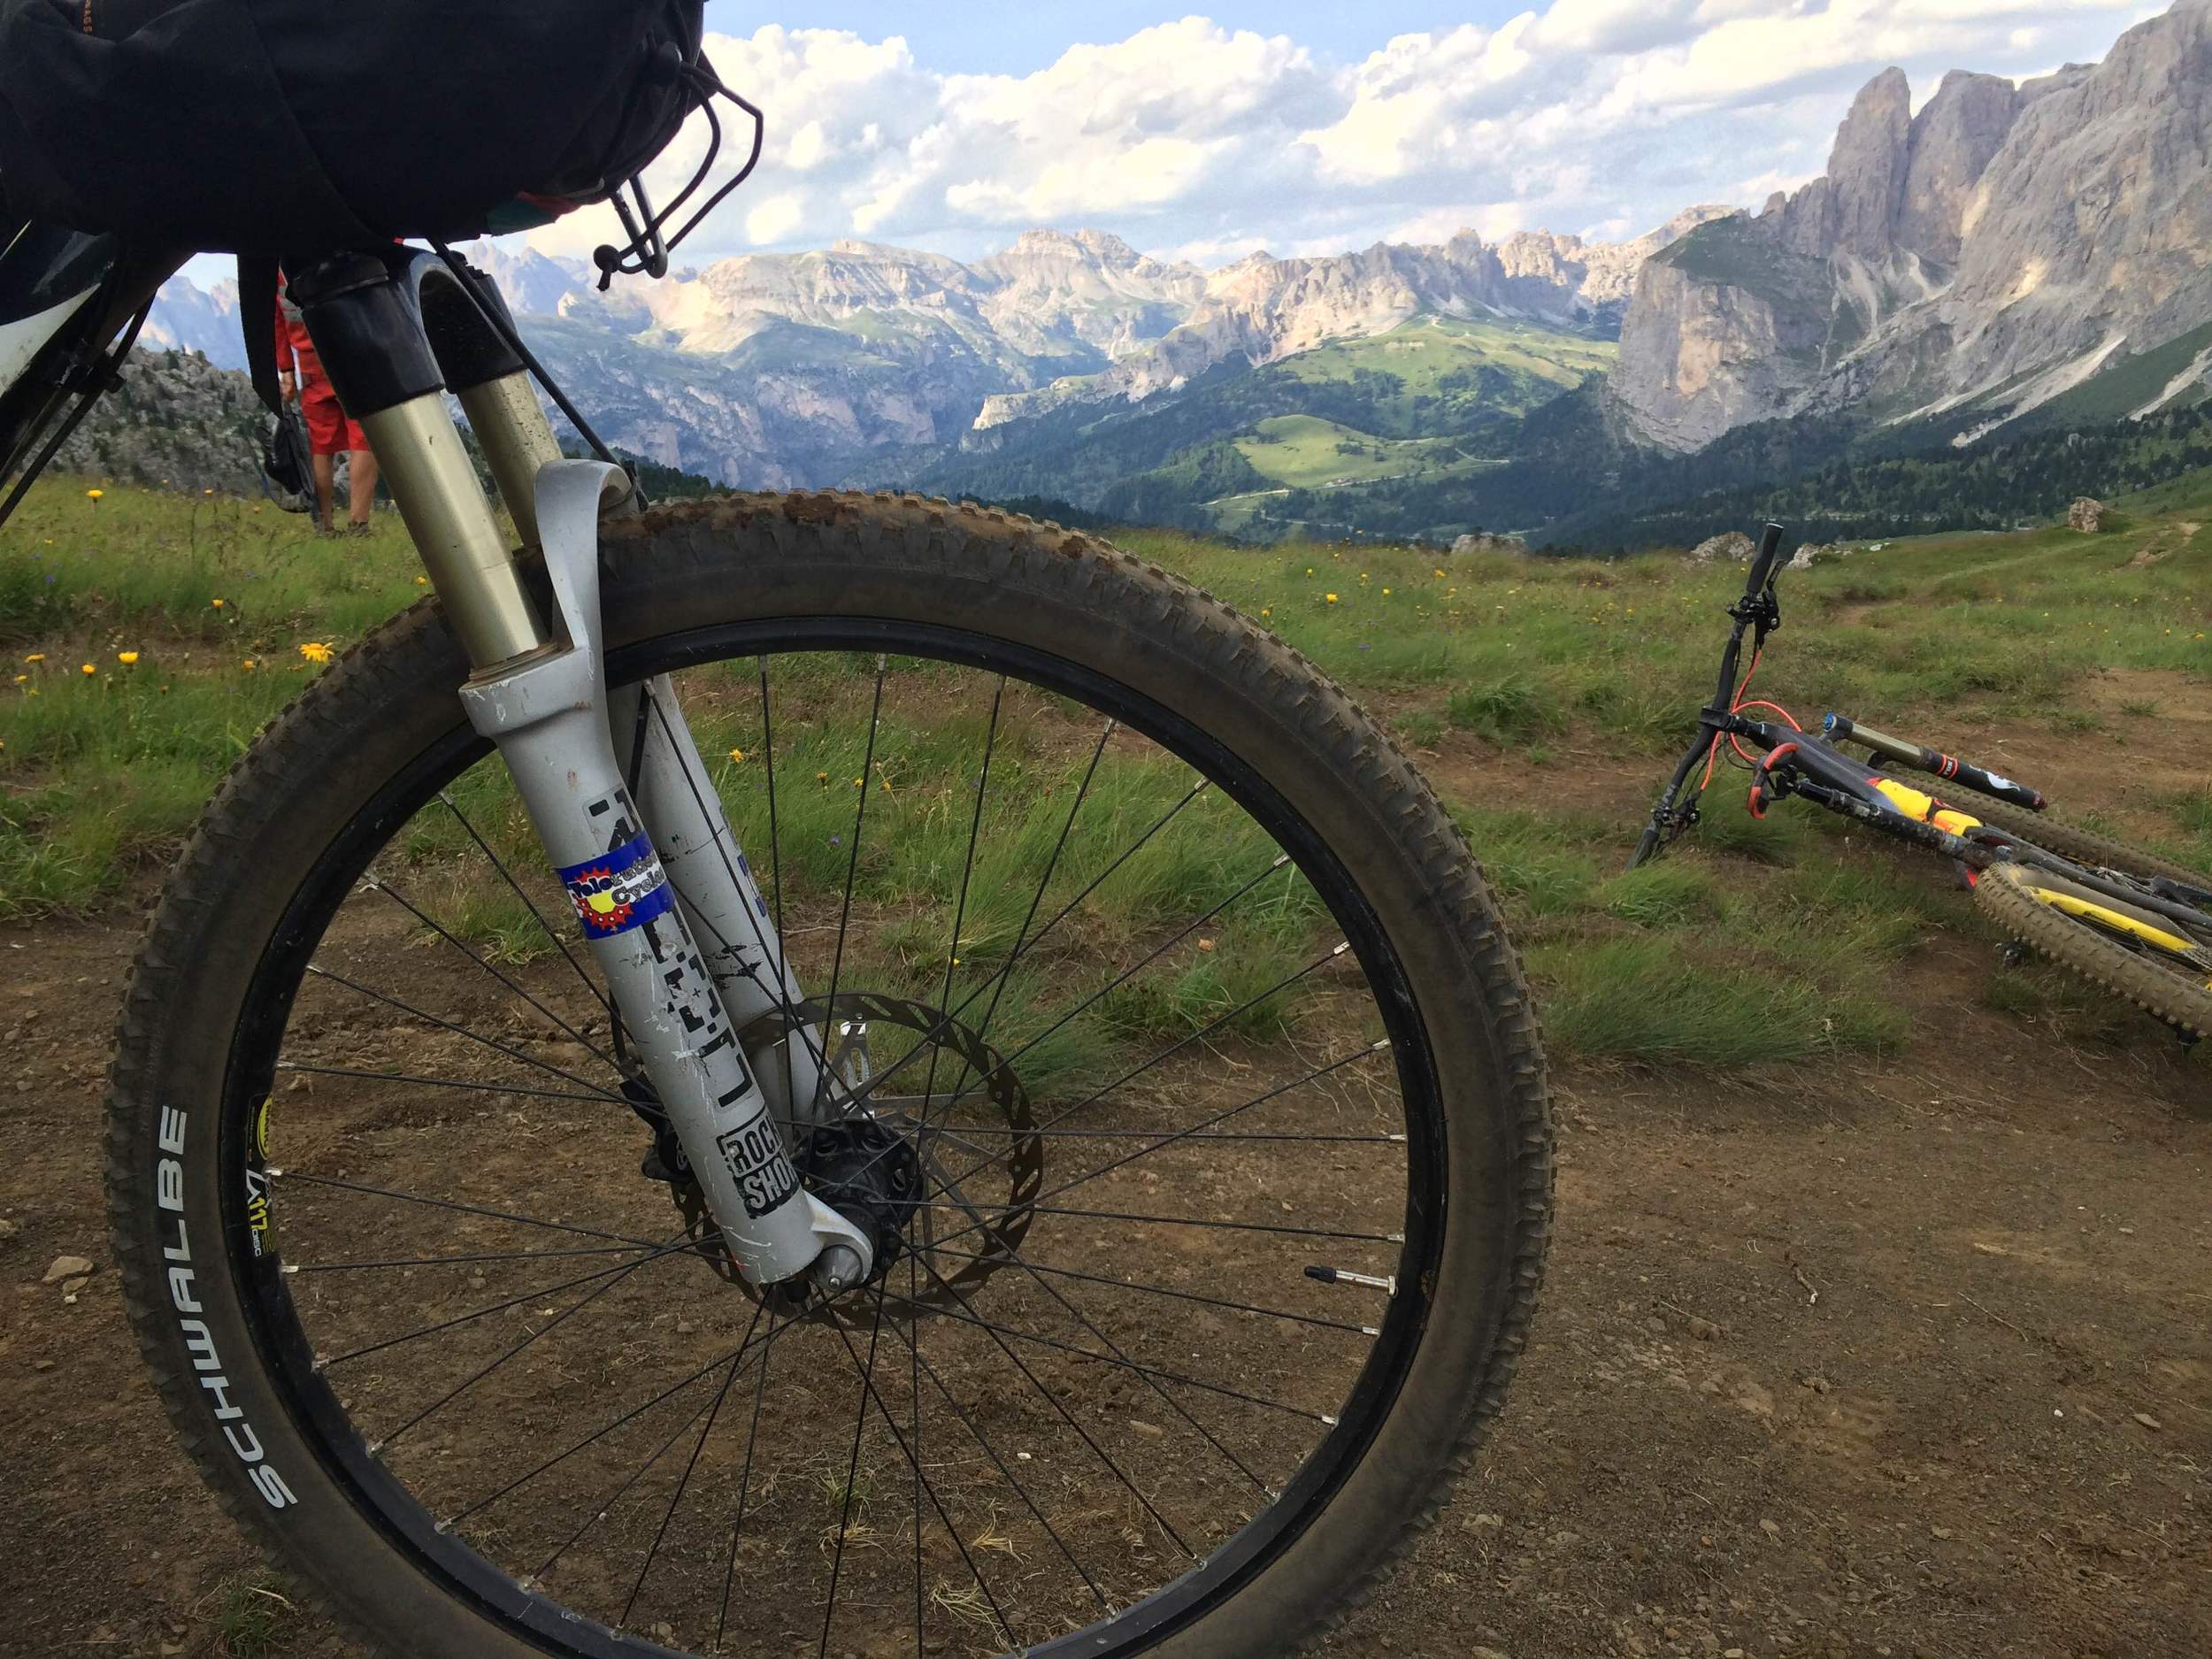 Hallie and Rob are on a long trip through the Dolomites and Alps. Amazing!